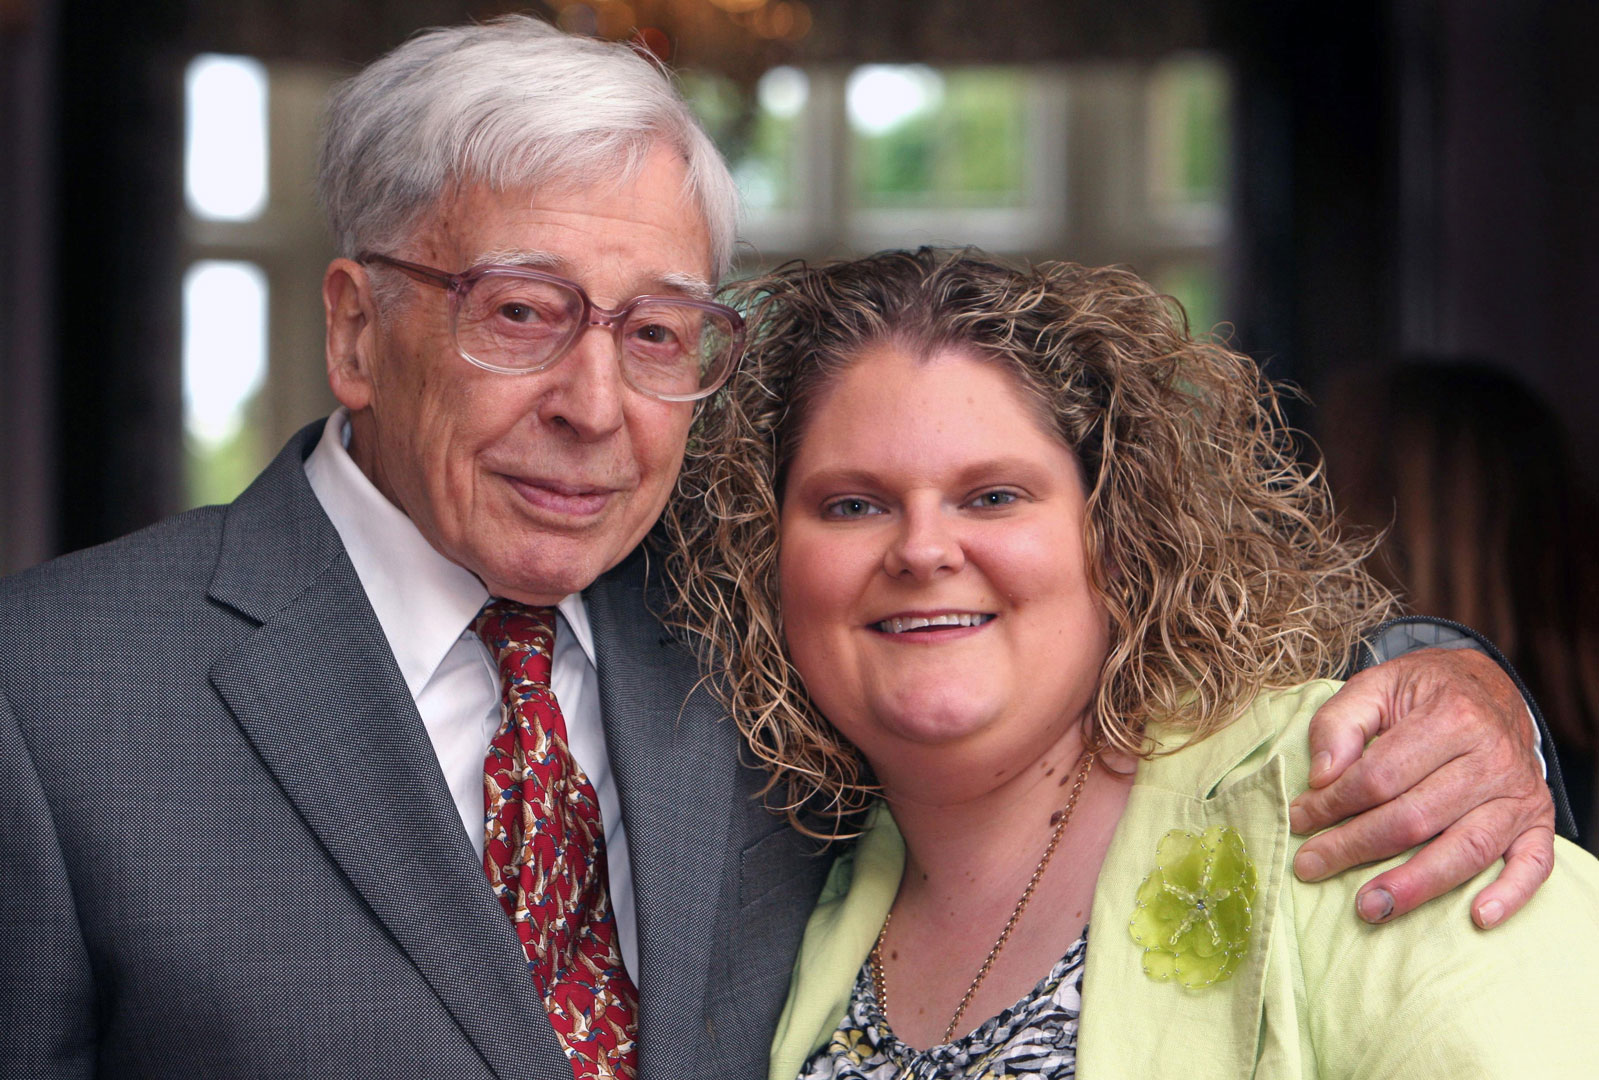 Louise Brown poses with Robert Edwards in 2008